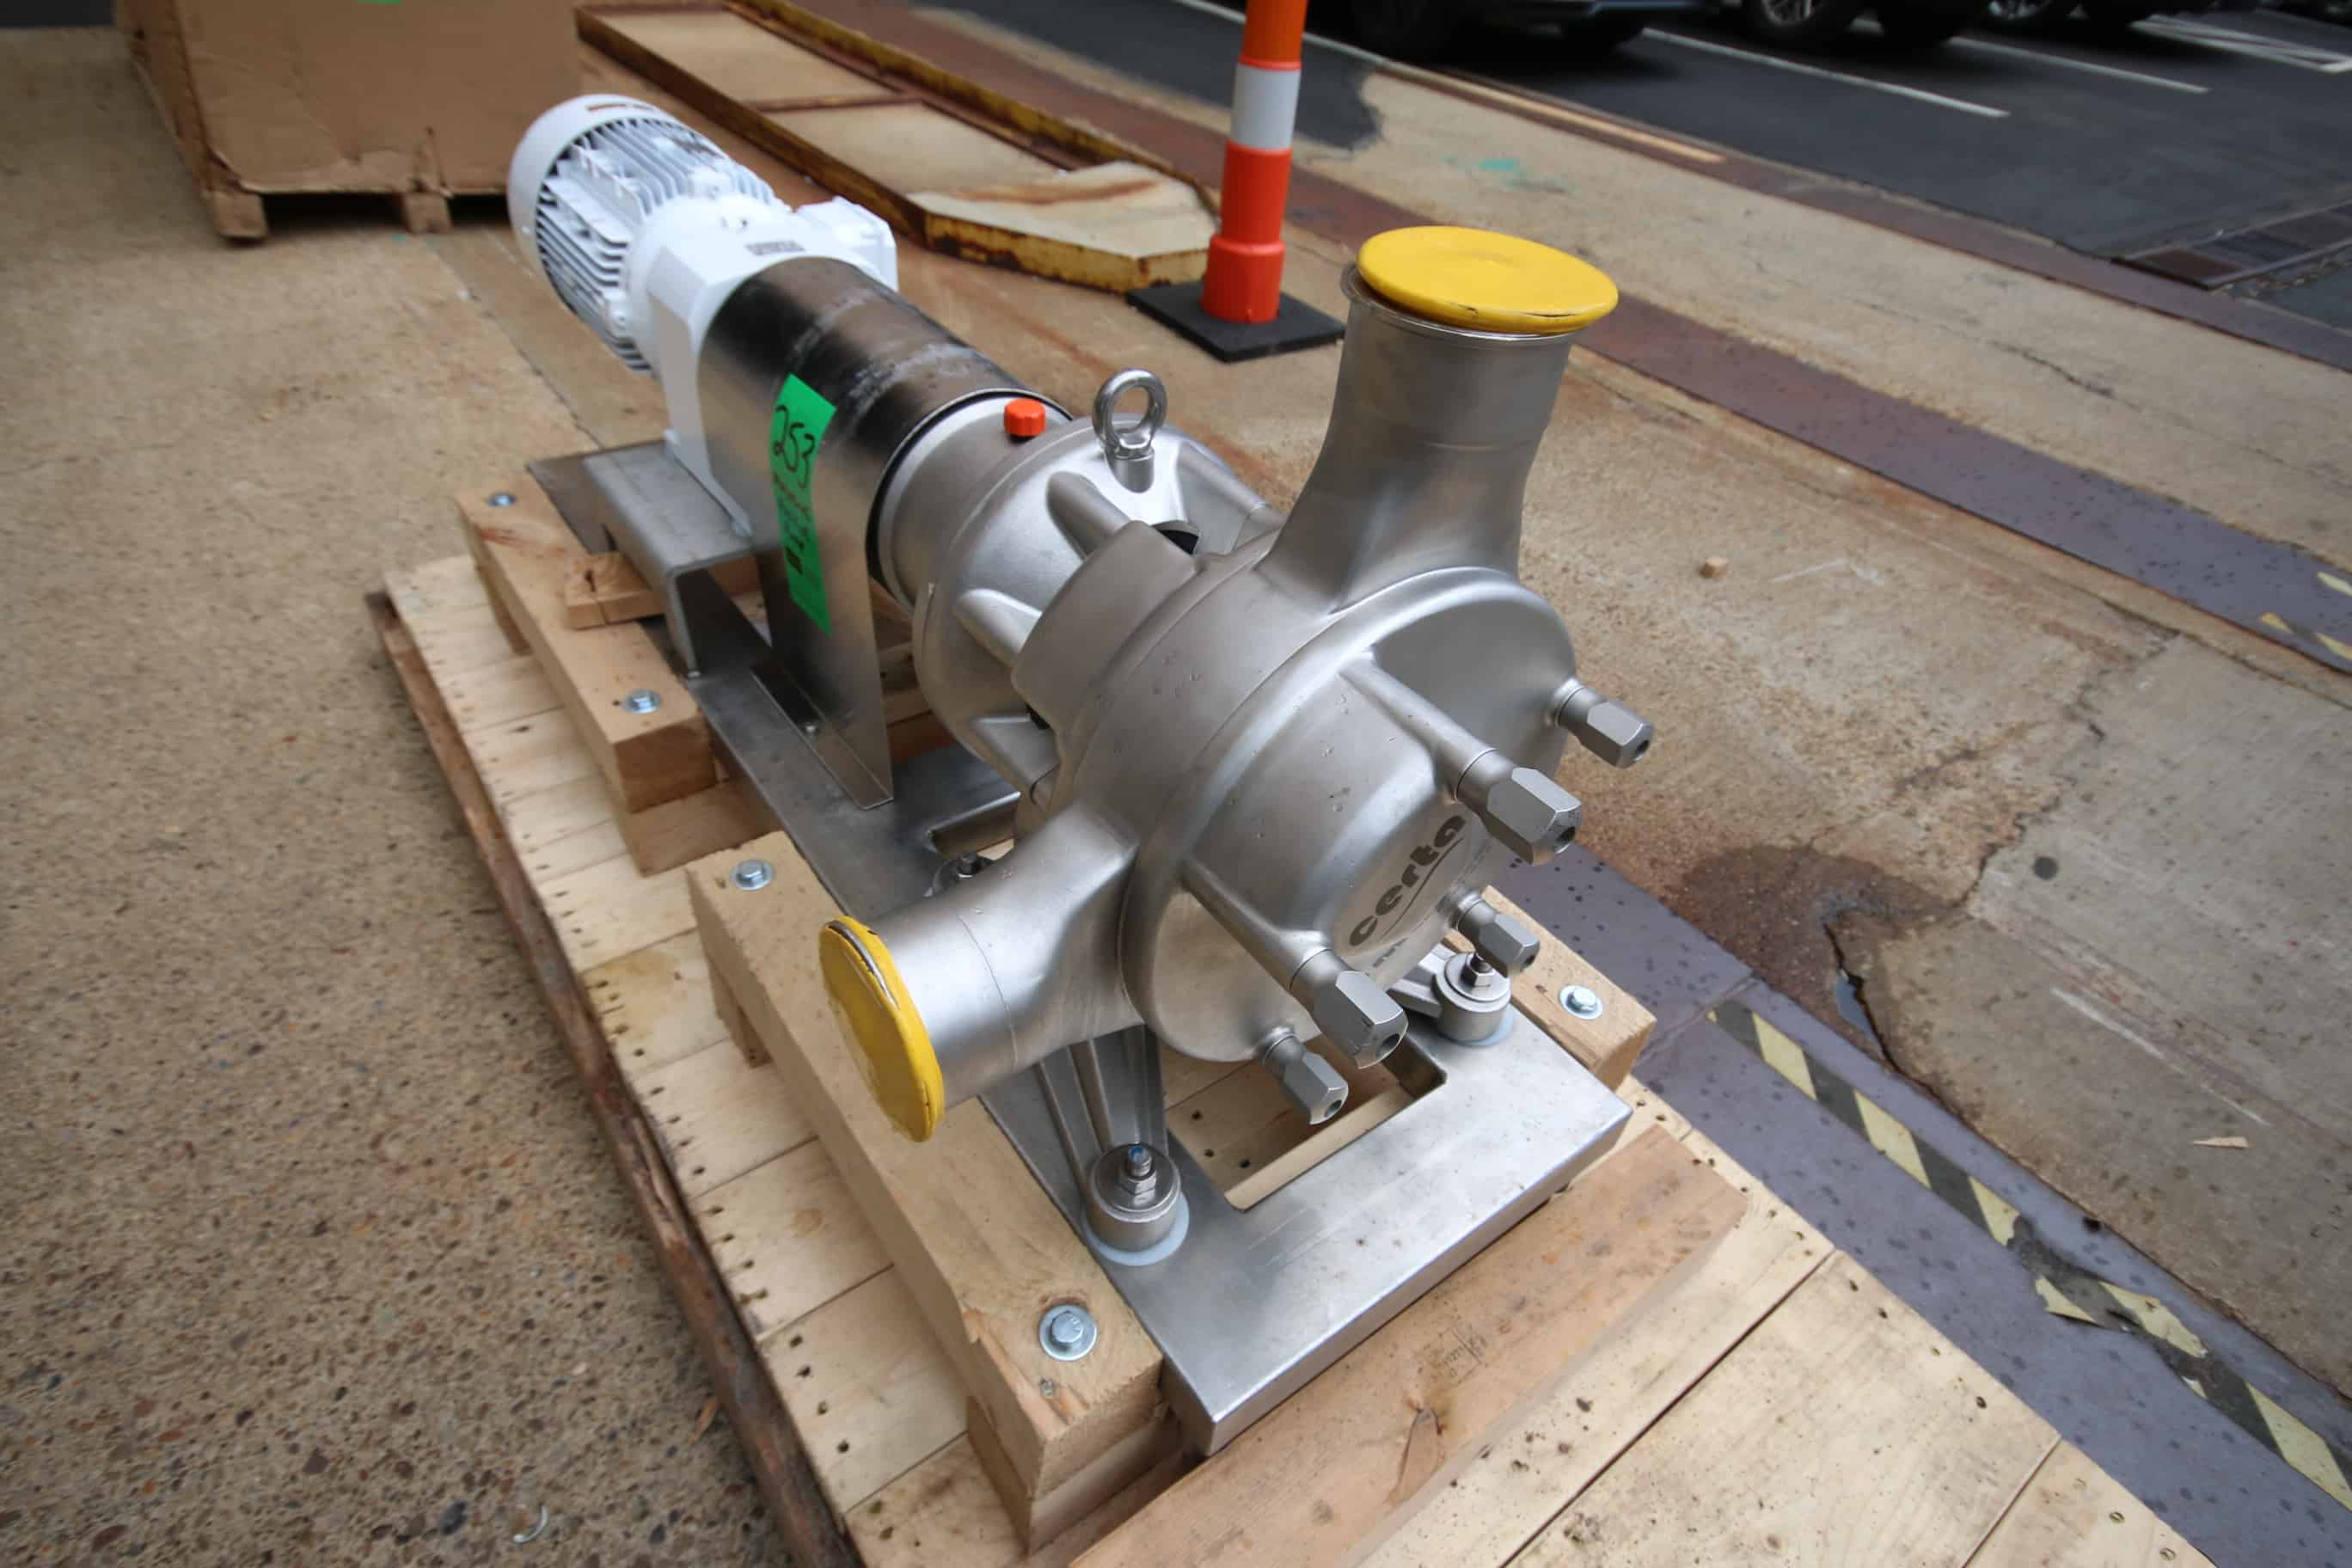 "(2) New Masosine Positive Displacement Pump, Type Certa 500, S/N 170613-0440 & 41, with 4"" x 4"" Clamp Type S/S Head, Nord Drive Motor 10 hp / 1765 RPM, 230/460V 3 Phase, Mounted on S/S Frame– Paid Over $25,000 Each New!!"